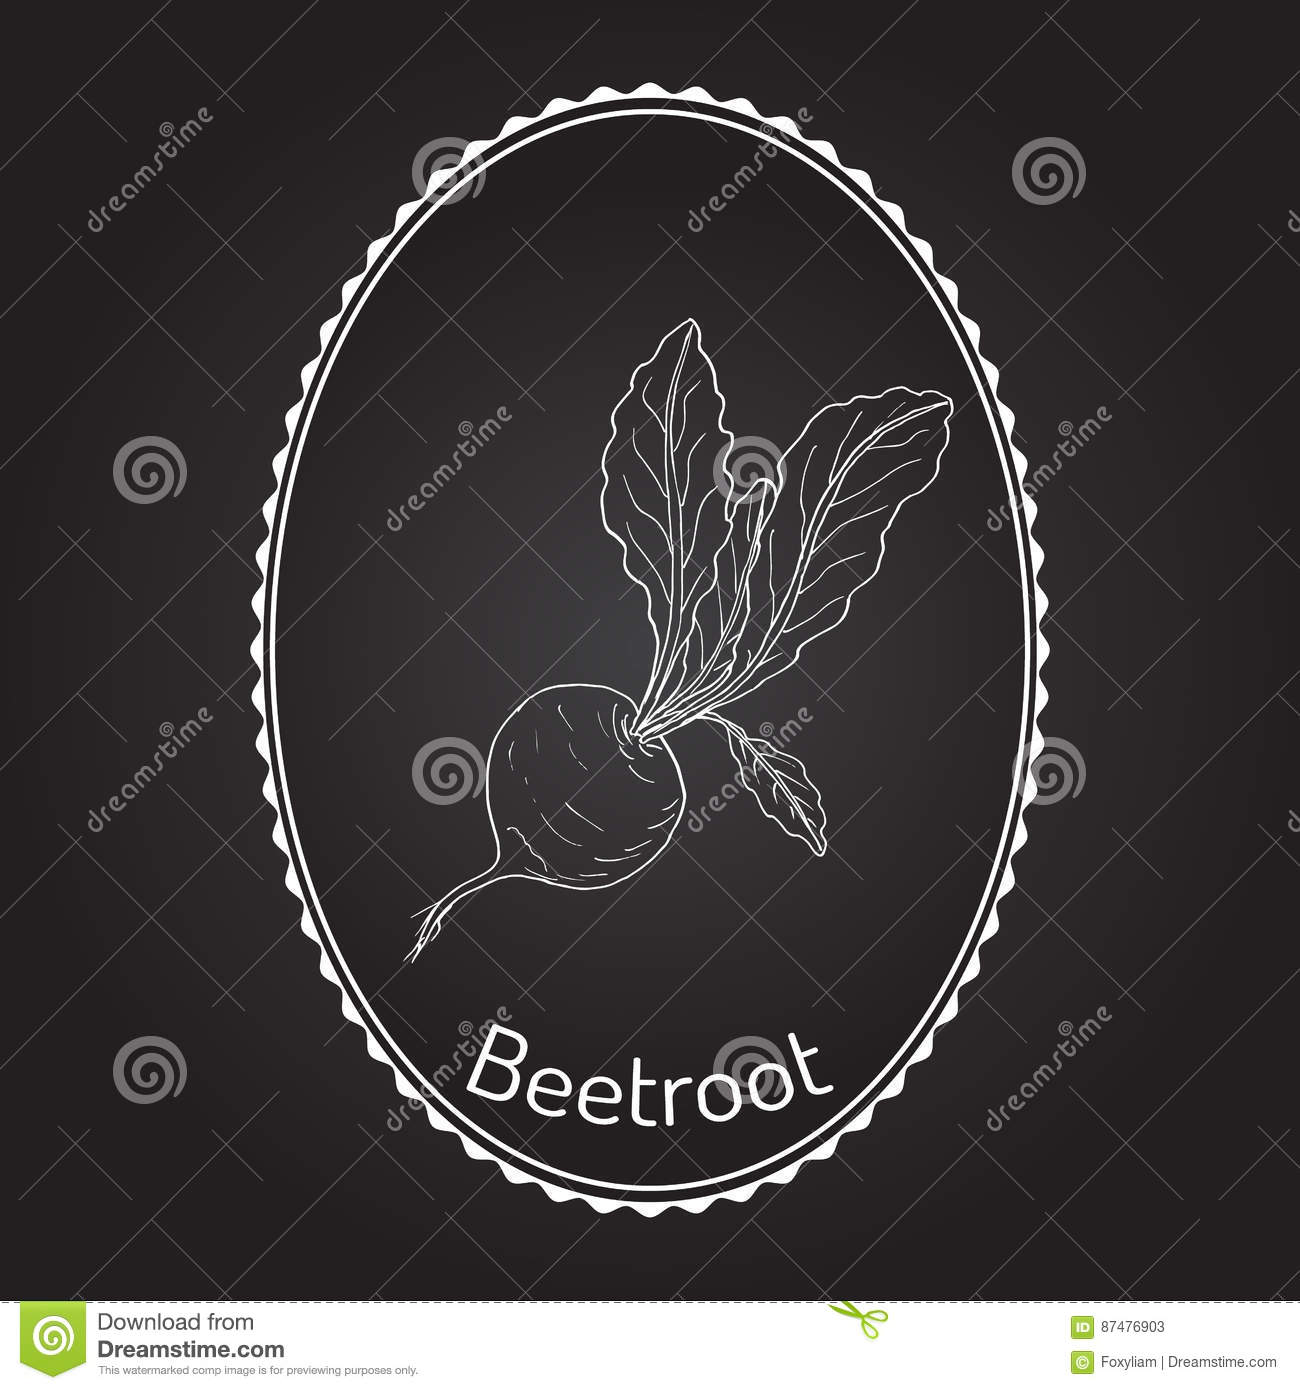 Beetroot with green leaves